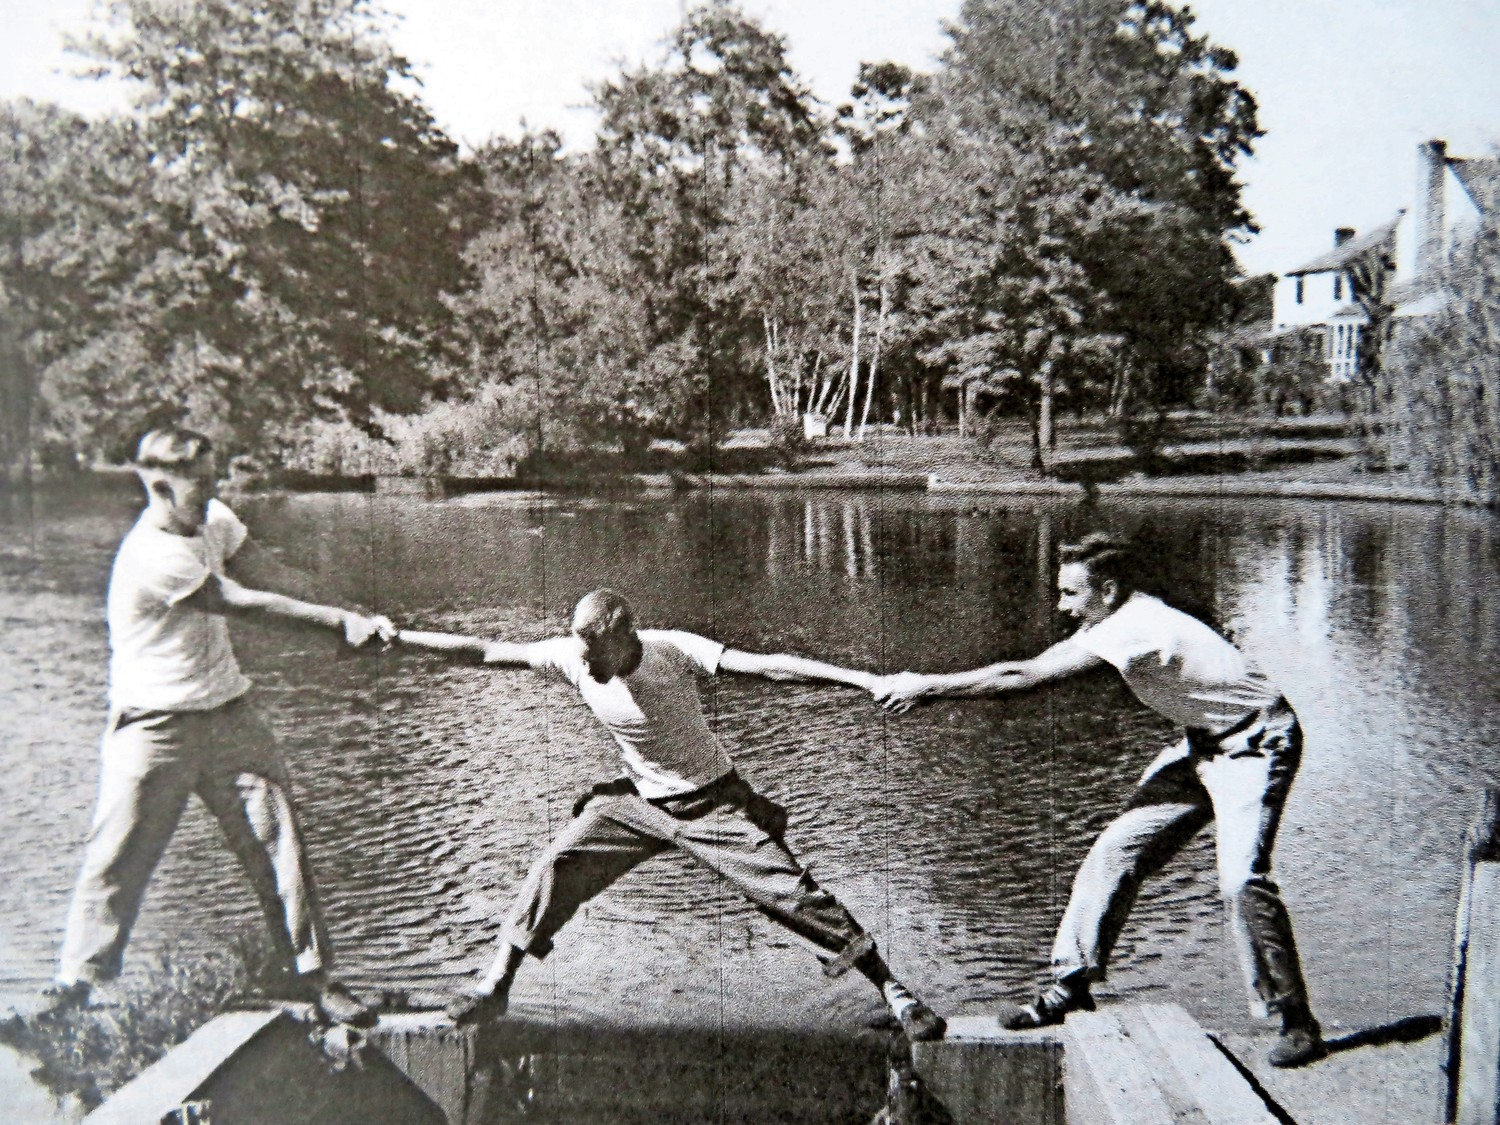 Three young men doing high jinks at Collin's Pond in the 1940s.